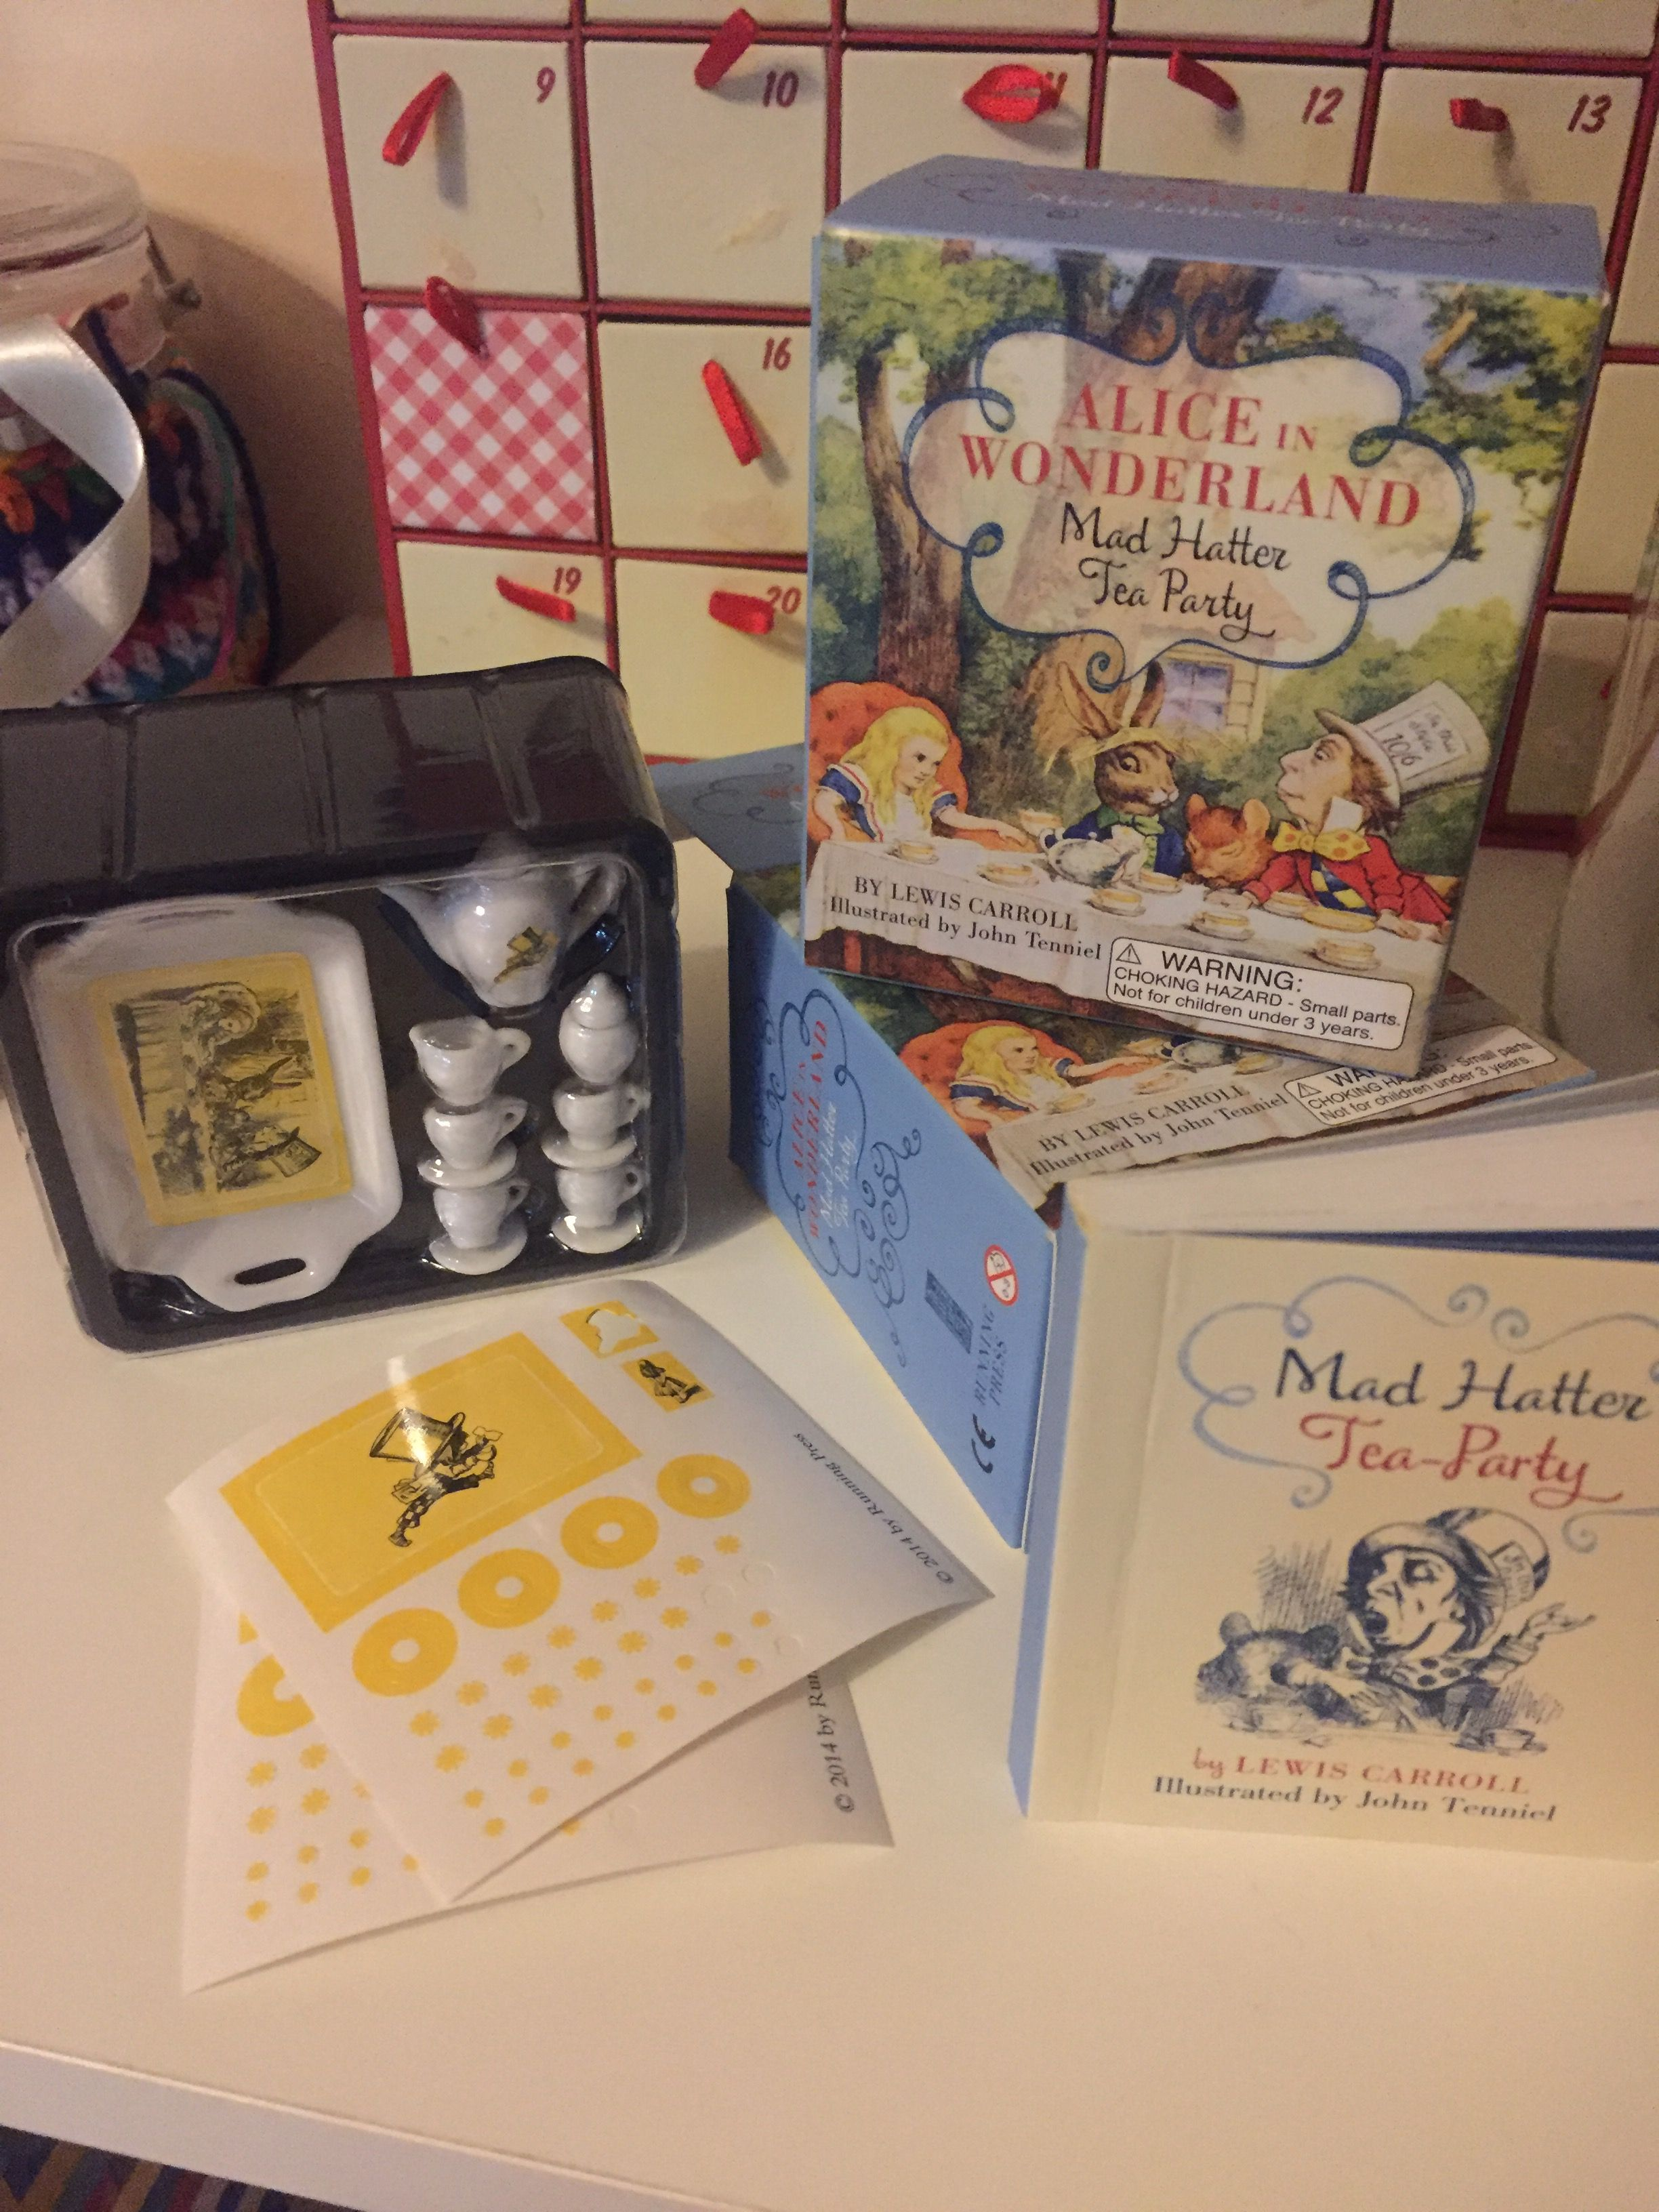 mad hatter teparty invitations pinterest%0A Alice in Wonderland Mad Hatter Tea Party Set by Running Press miniature tea  set